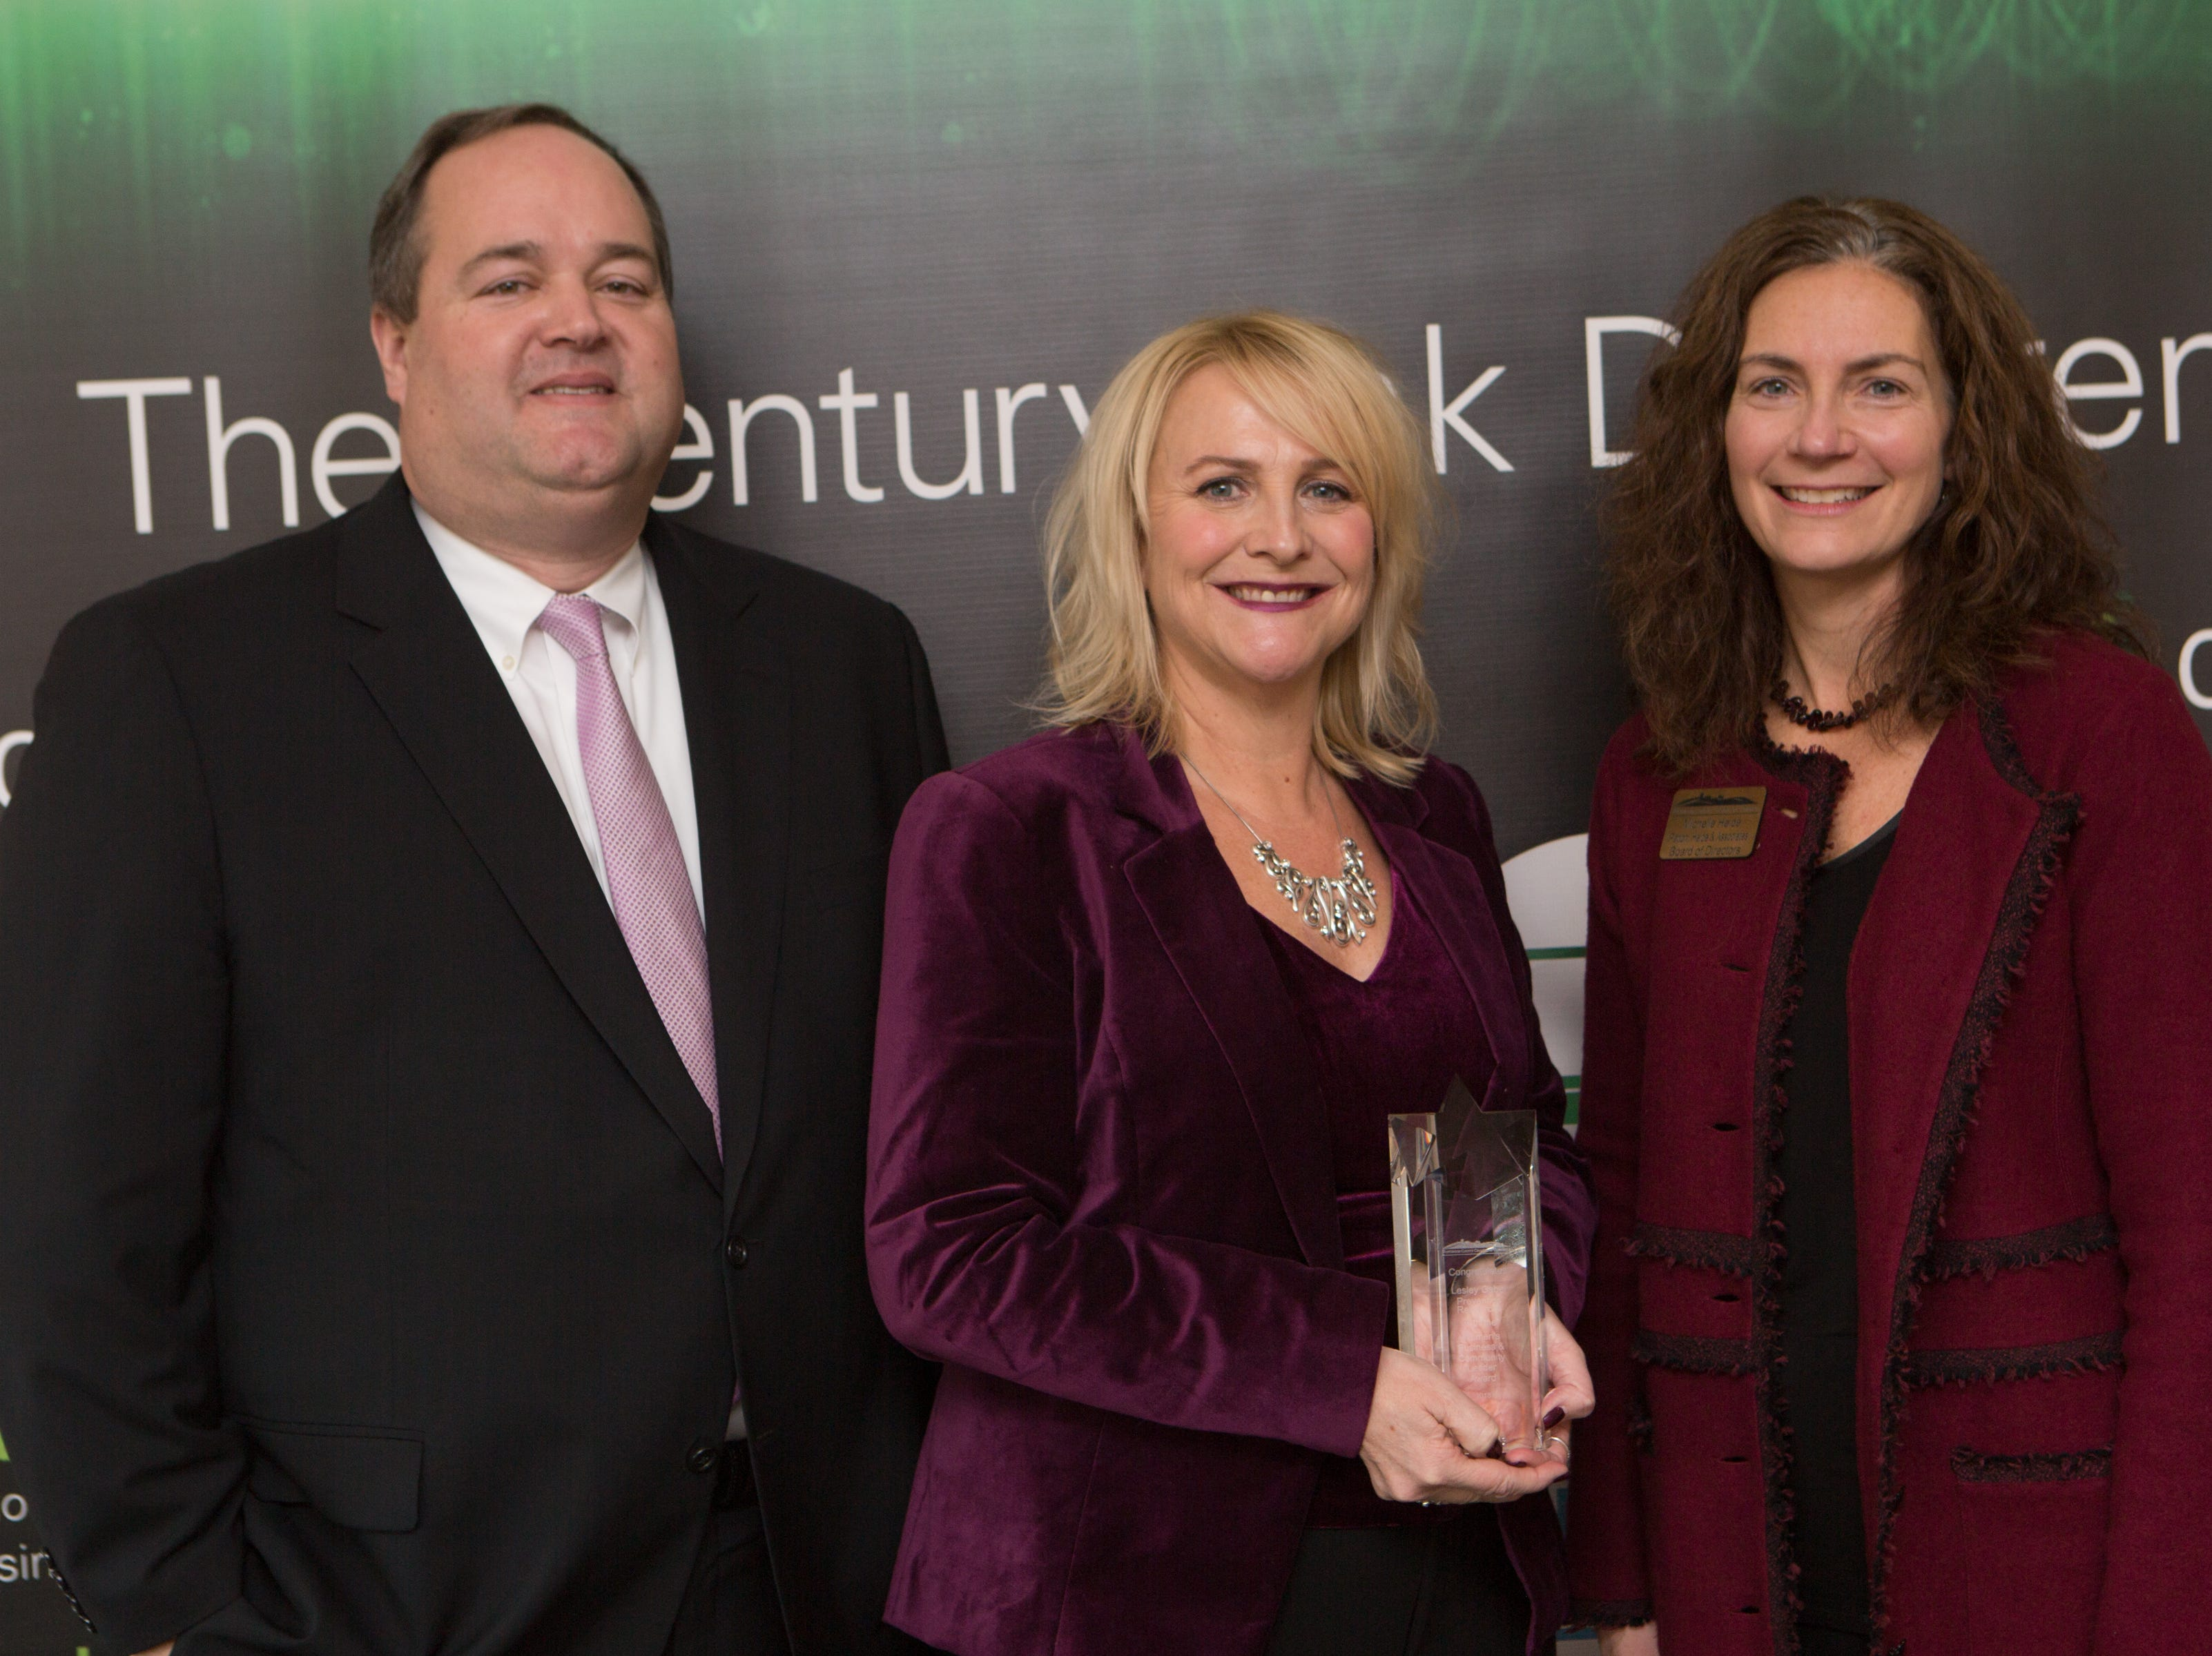 The Hunterdon County Chamber of Commerce recognized its 2018 Hunterdon County Business Award recipients on Dec. 11.